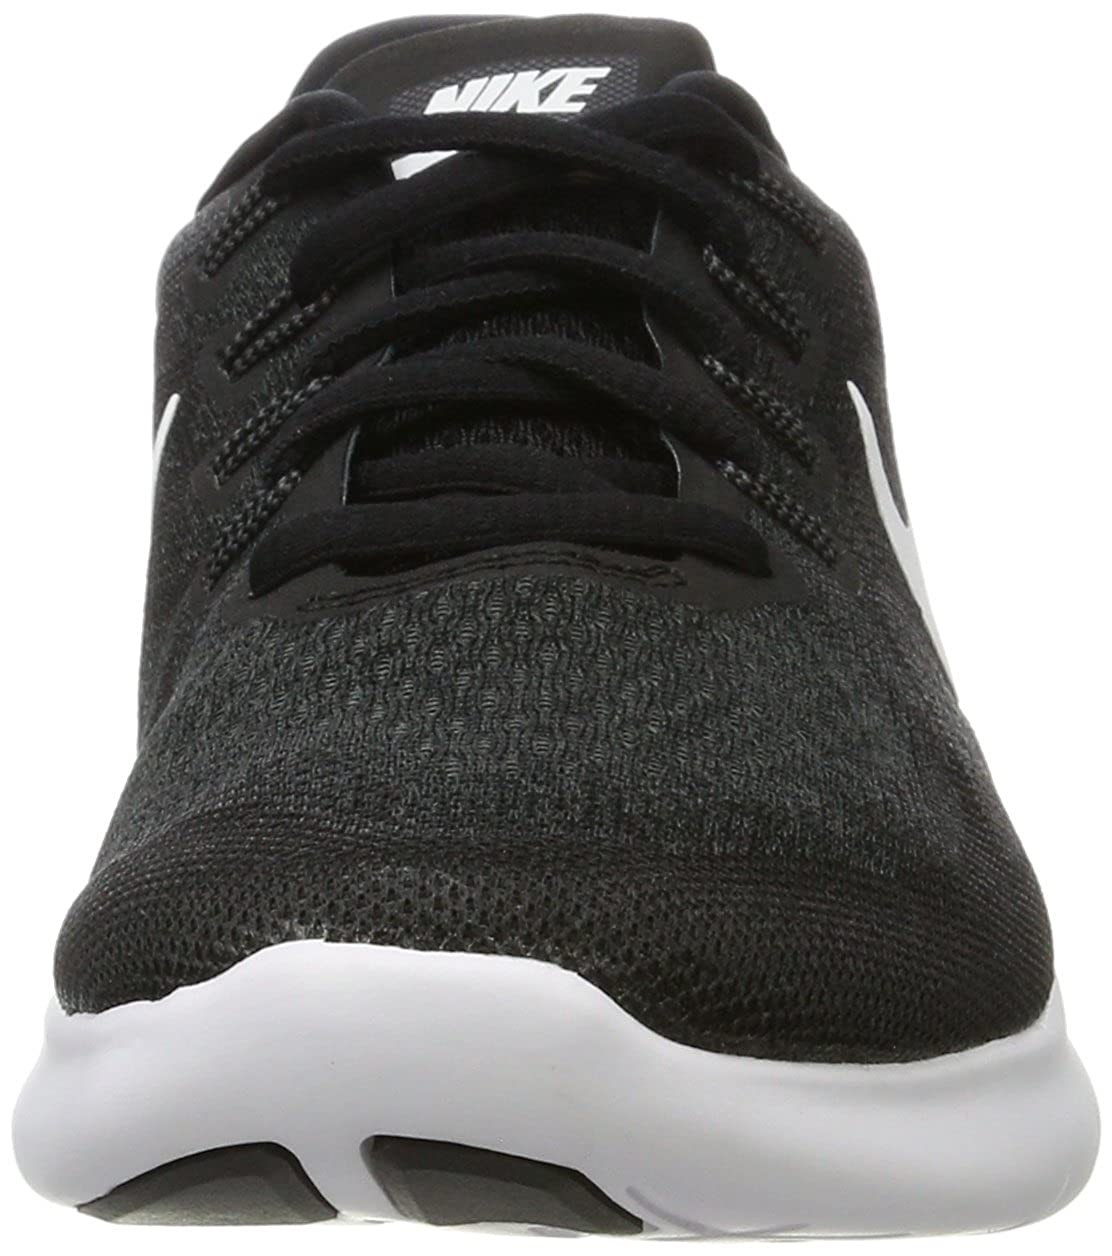 the best attitude 5765d 27a3c Amazon.com   NIKE Men s Free RN Running Shoe   Road Running